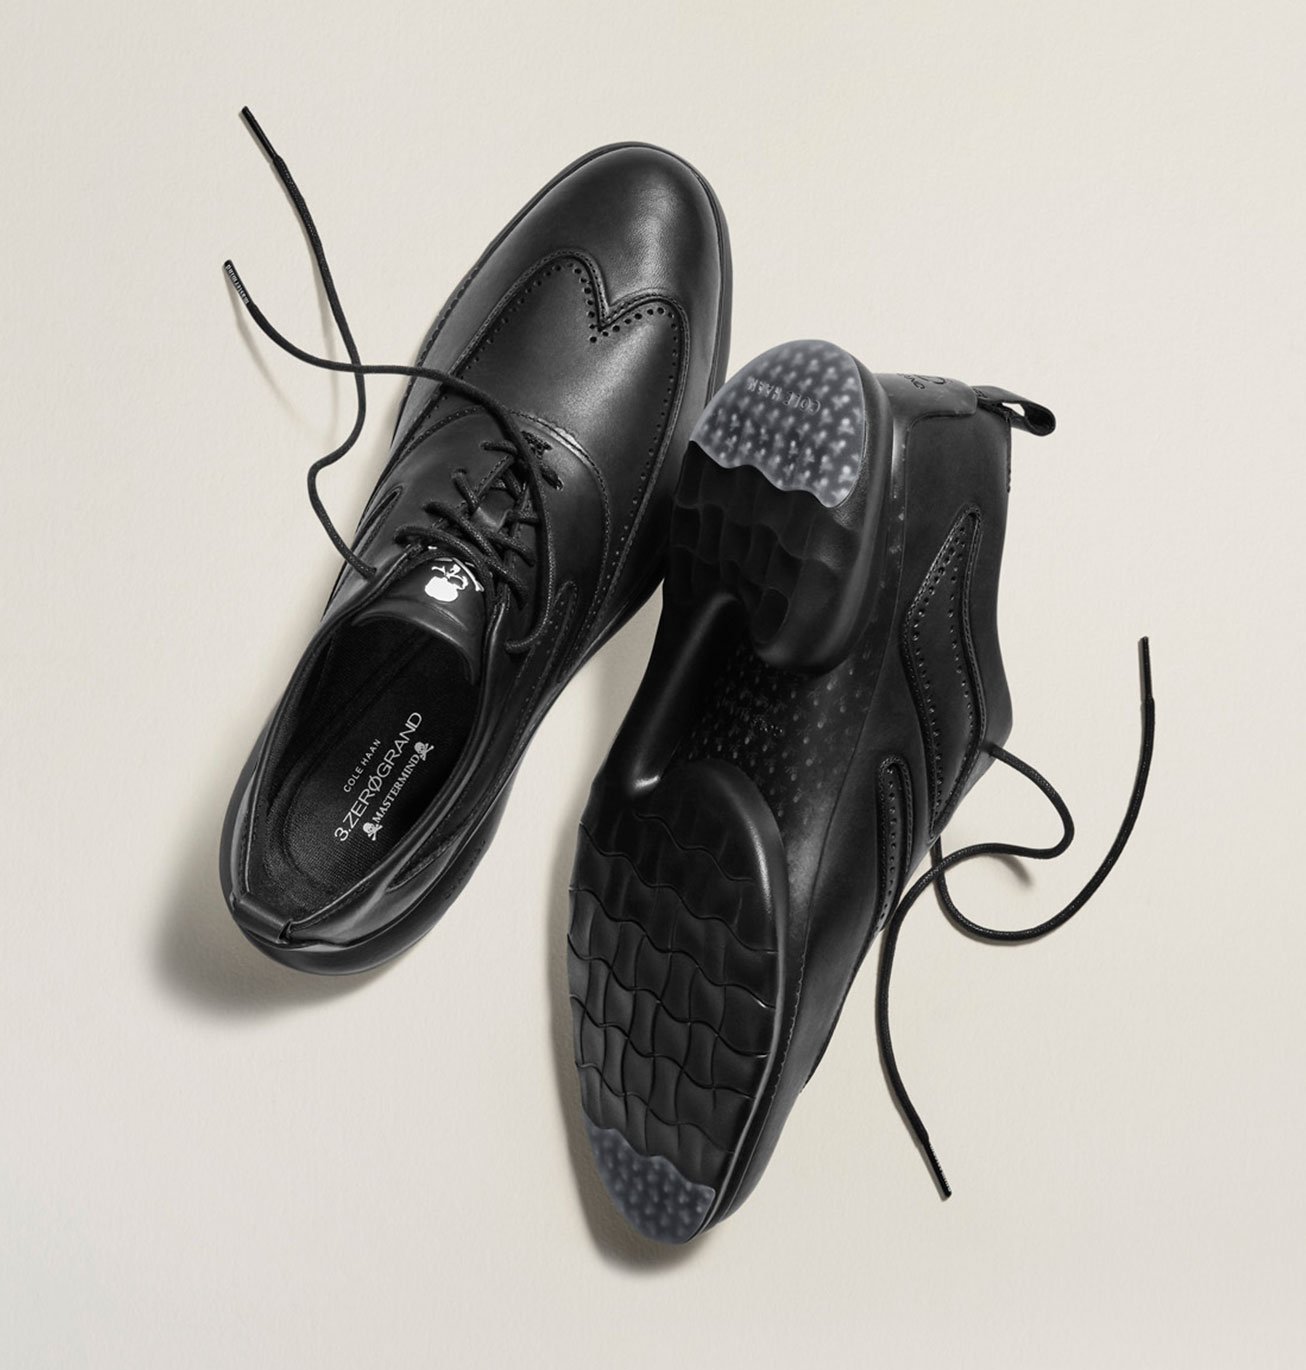 4d48a7911c5 COLE HAAN AND MASTERMIND LAUNCH MEN S FOOTWEAR COLLECTION